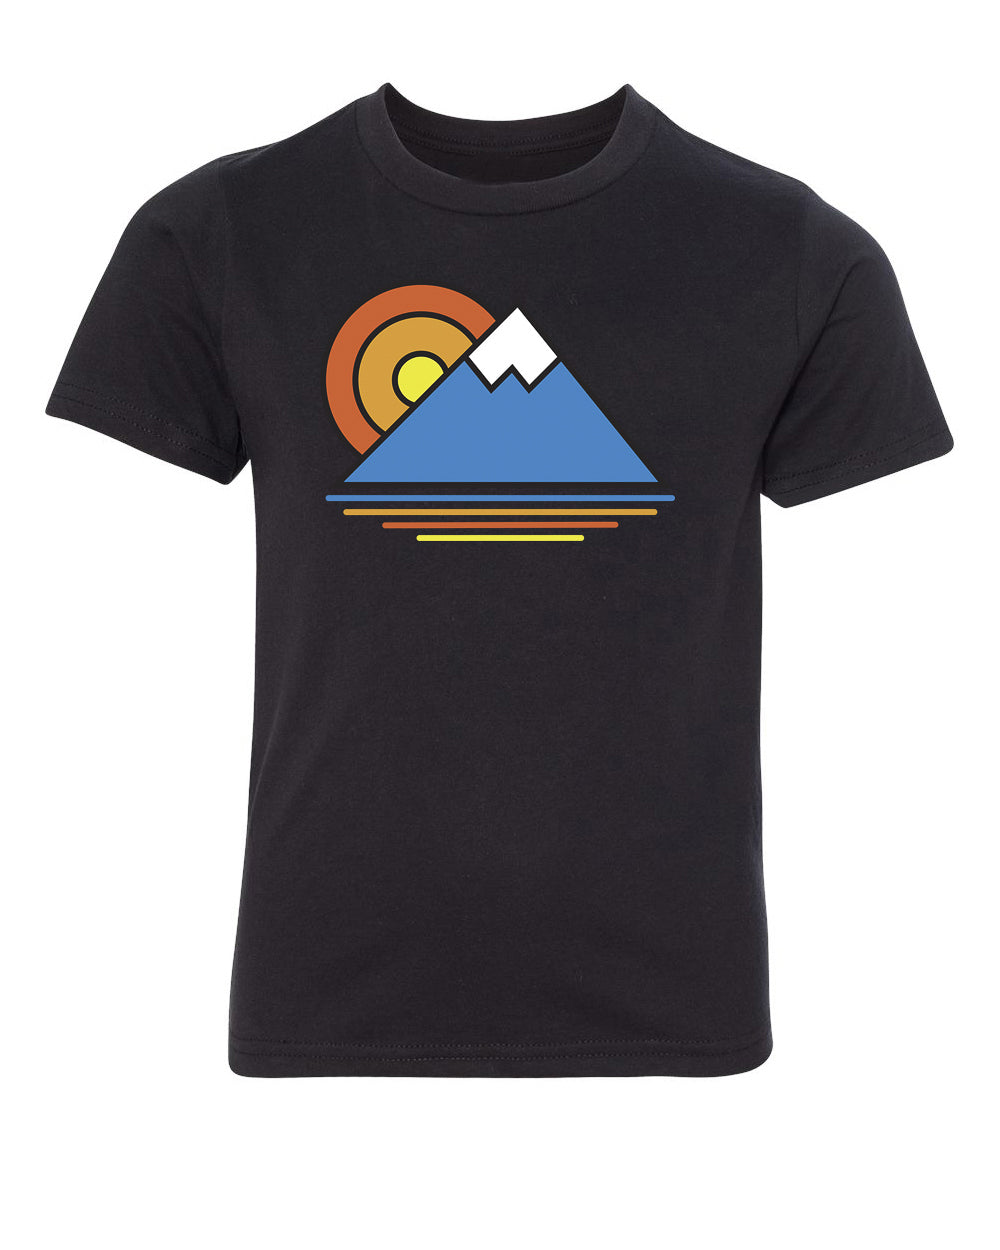 Shirt - Sunset Mountain T-shirts, Women's Outdoor Shirts, Outdoor Life T Shirts